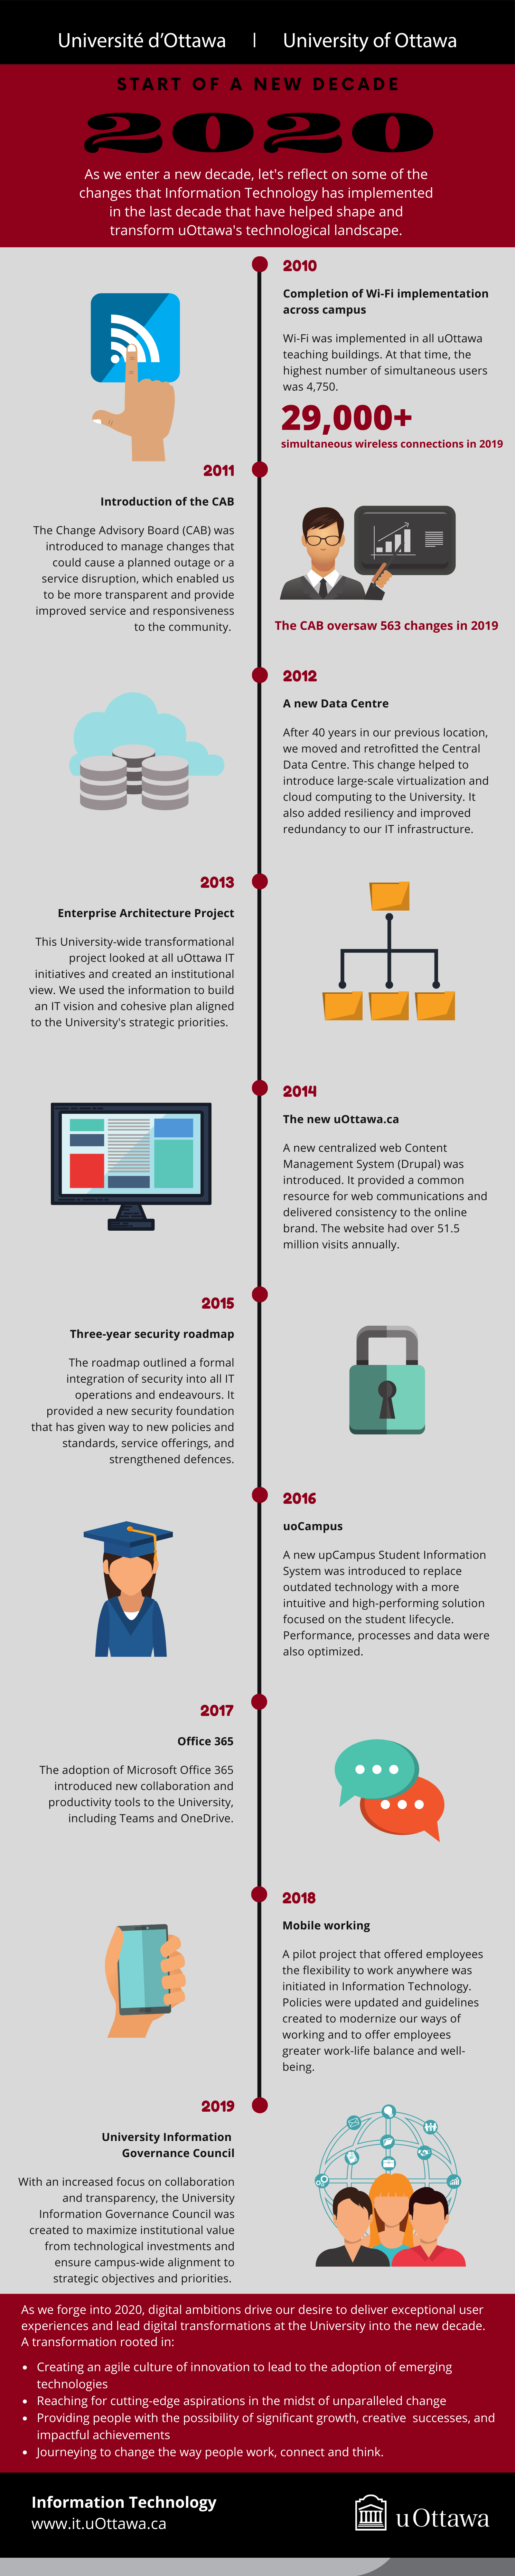 Start of a decade infographic, showing Information Technology achievements over the last decade